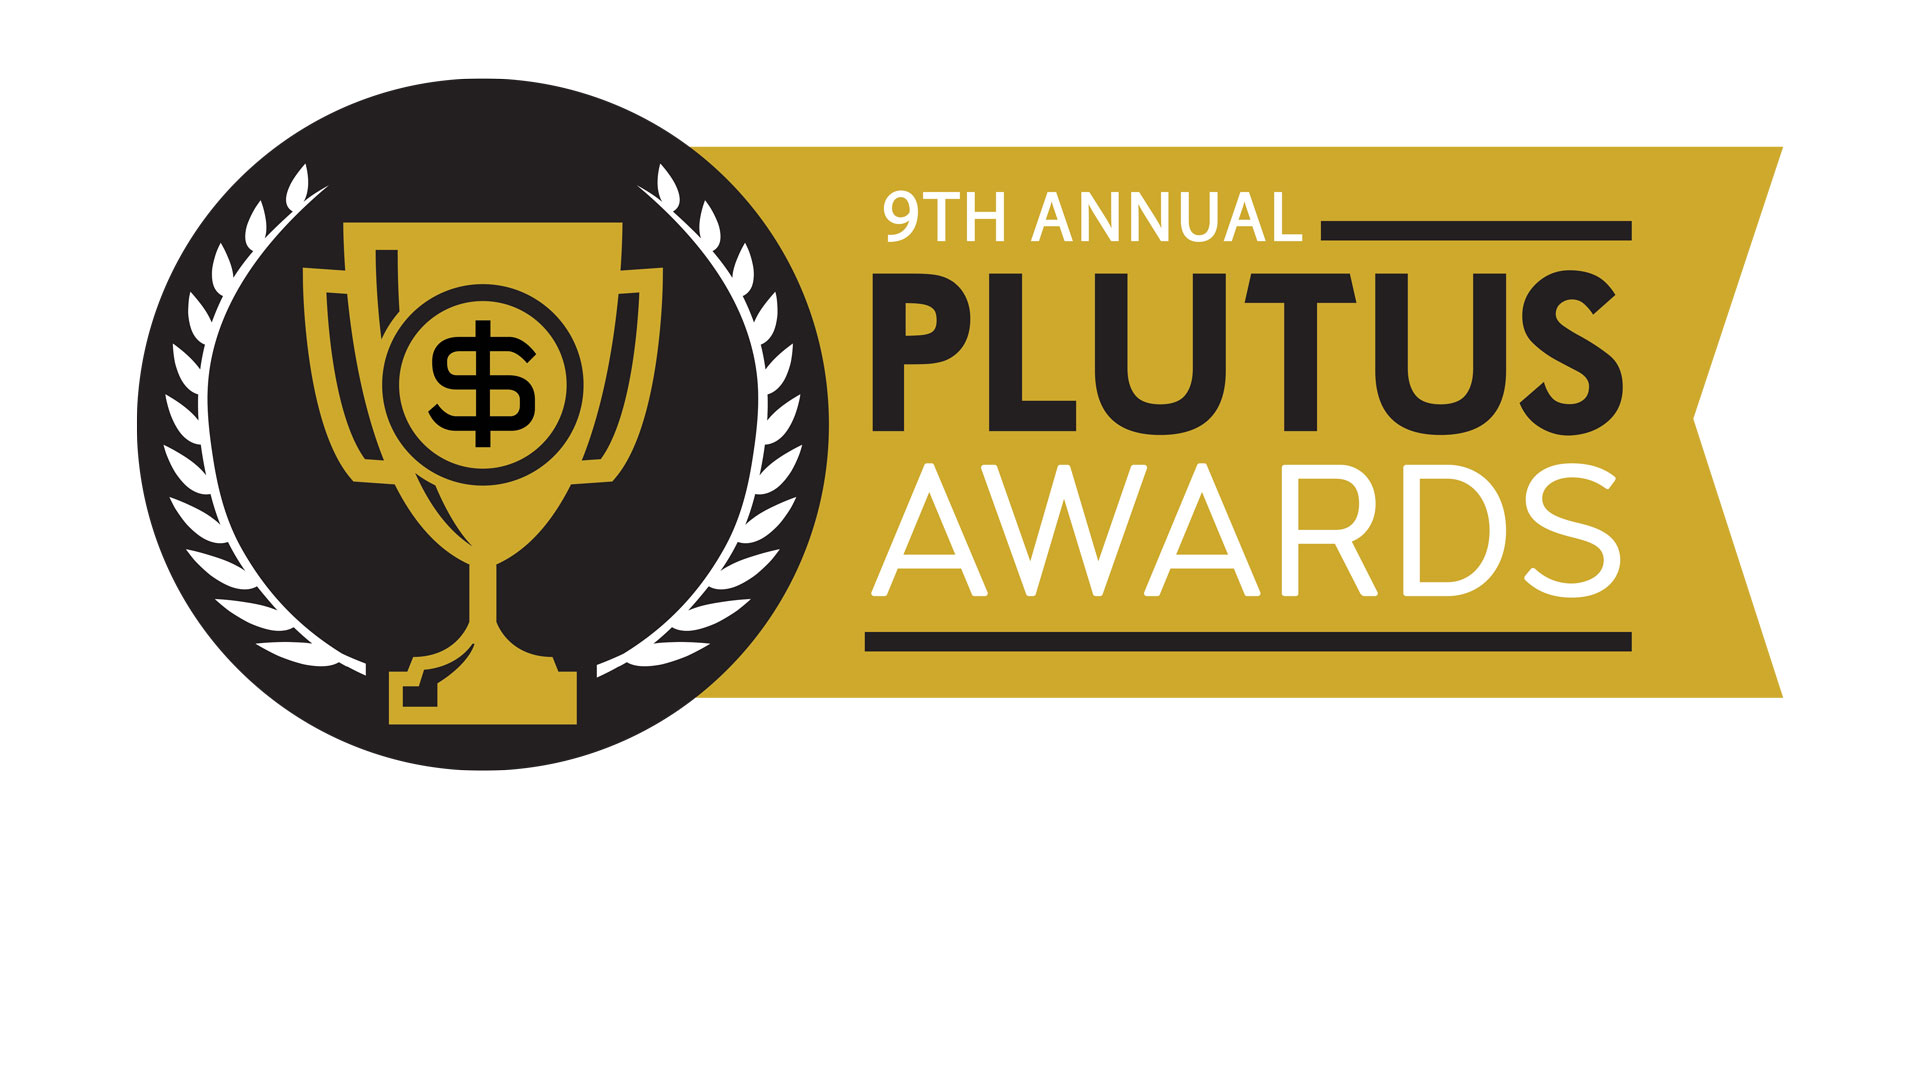 Submit a Nomination for the Plutus Awards - The Plutus Foundation